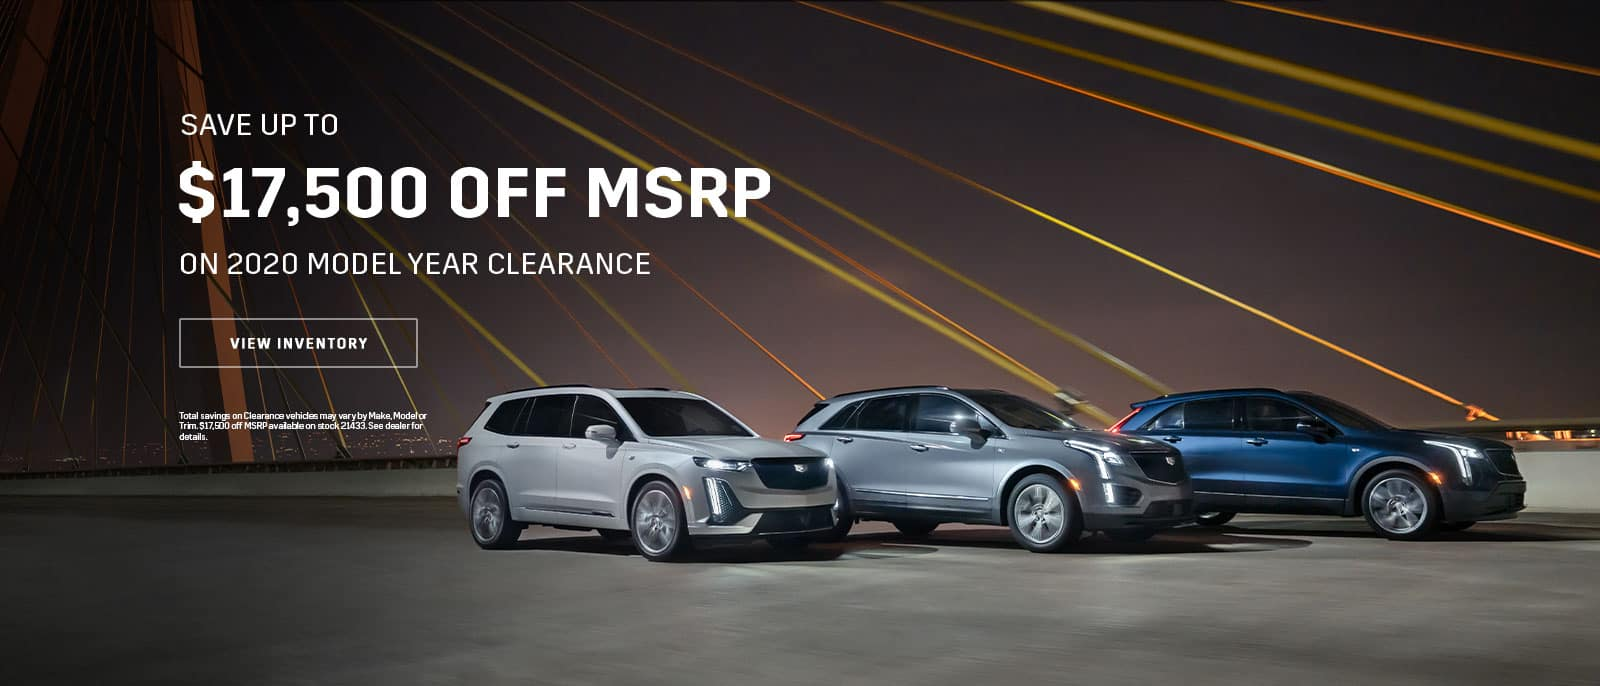 Save Up to $17,500 off MSRP